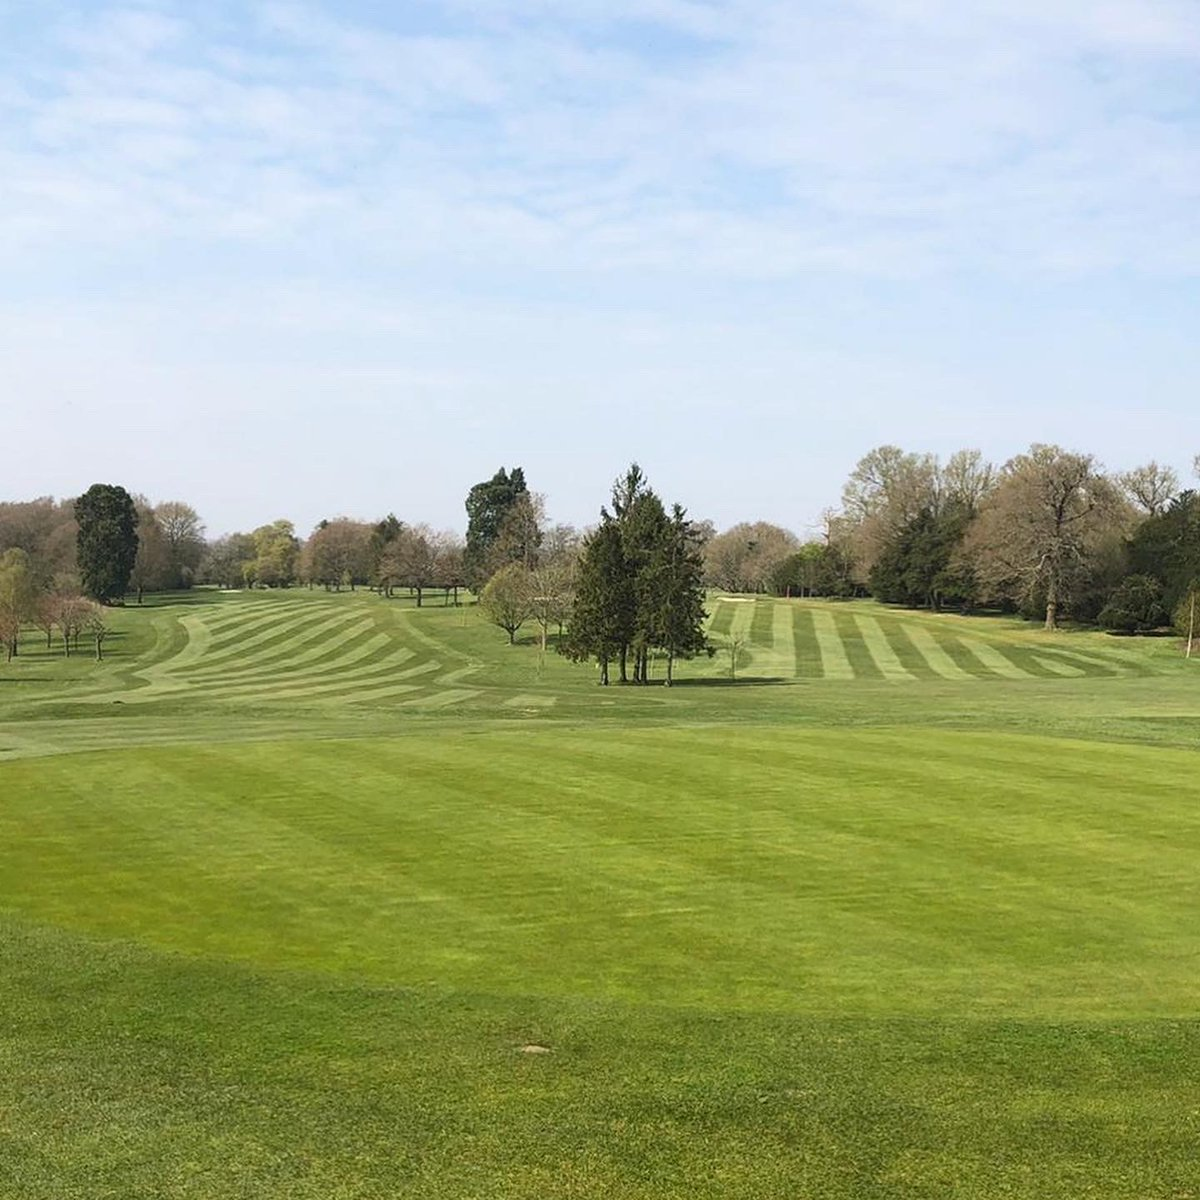 Are you missing our Course as much as we miss having you here?! Share the love and stay positive #brookmansparkgolfclub #golf #hertfordshiregolf #brookmansparkpic.twitter.com/38BTworiYJ